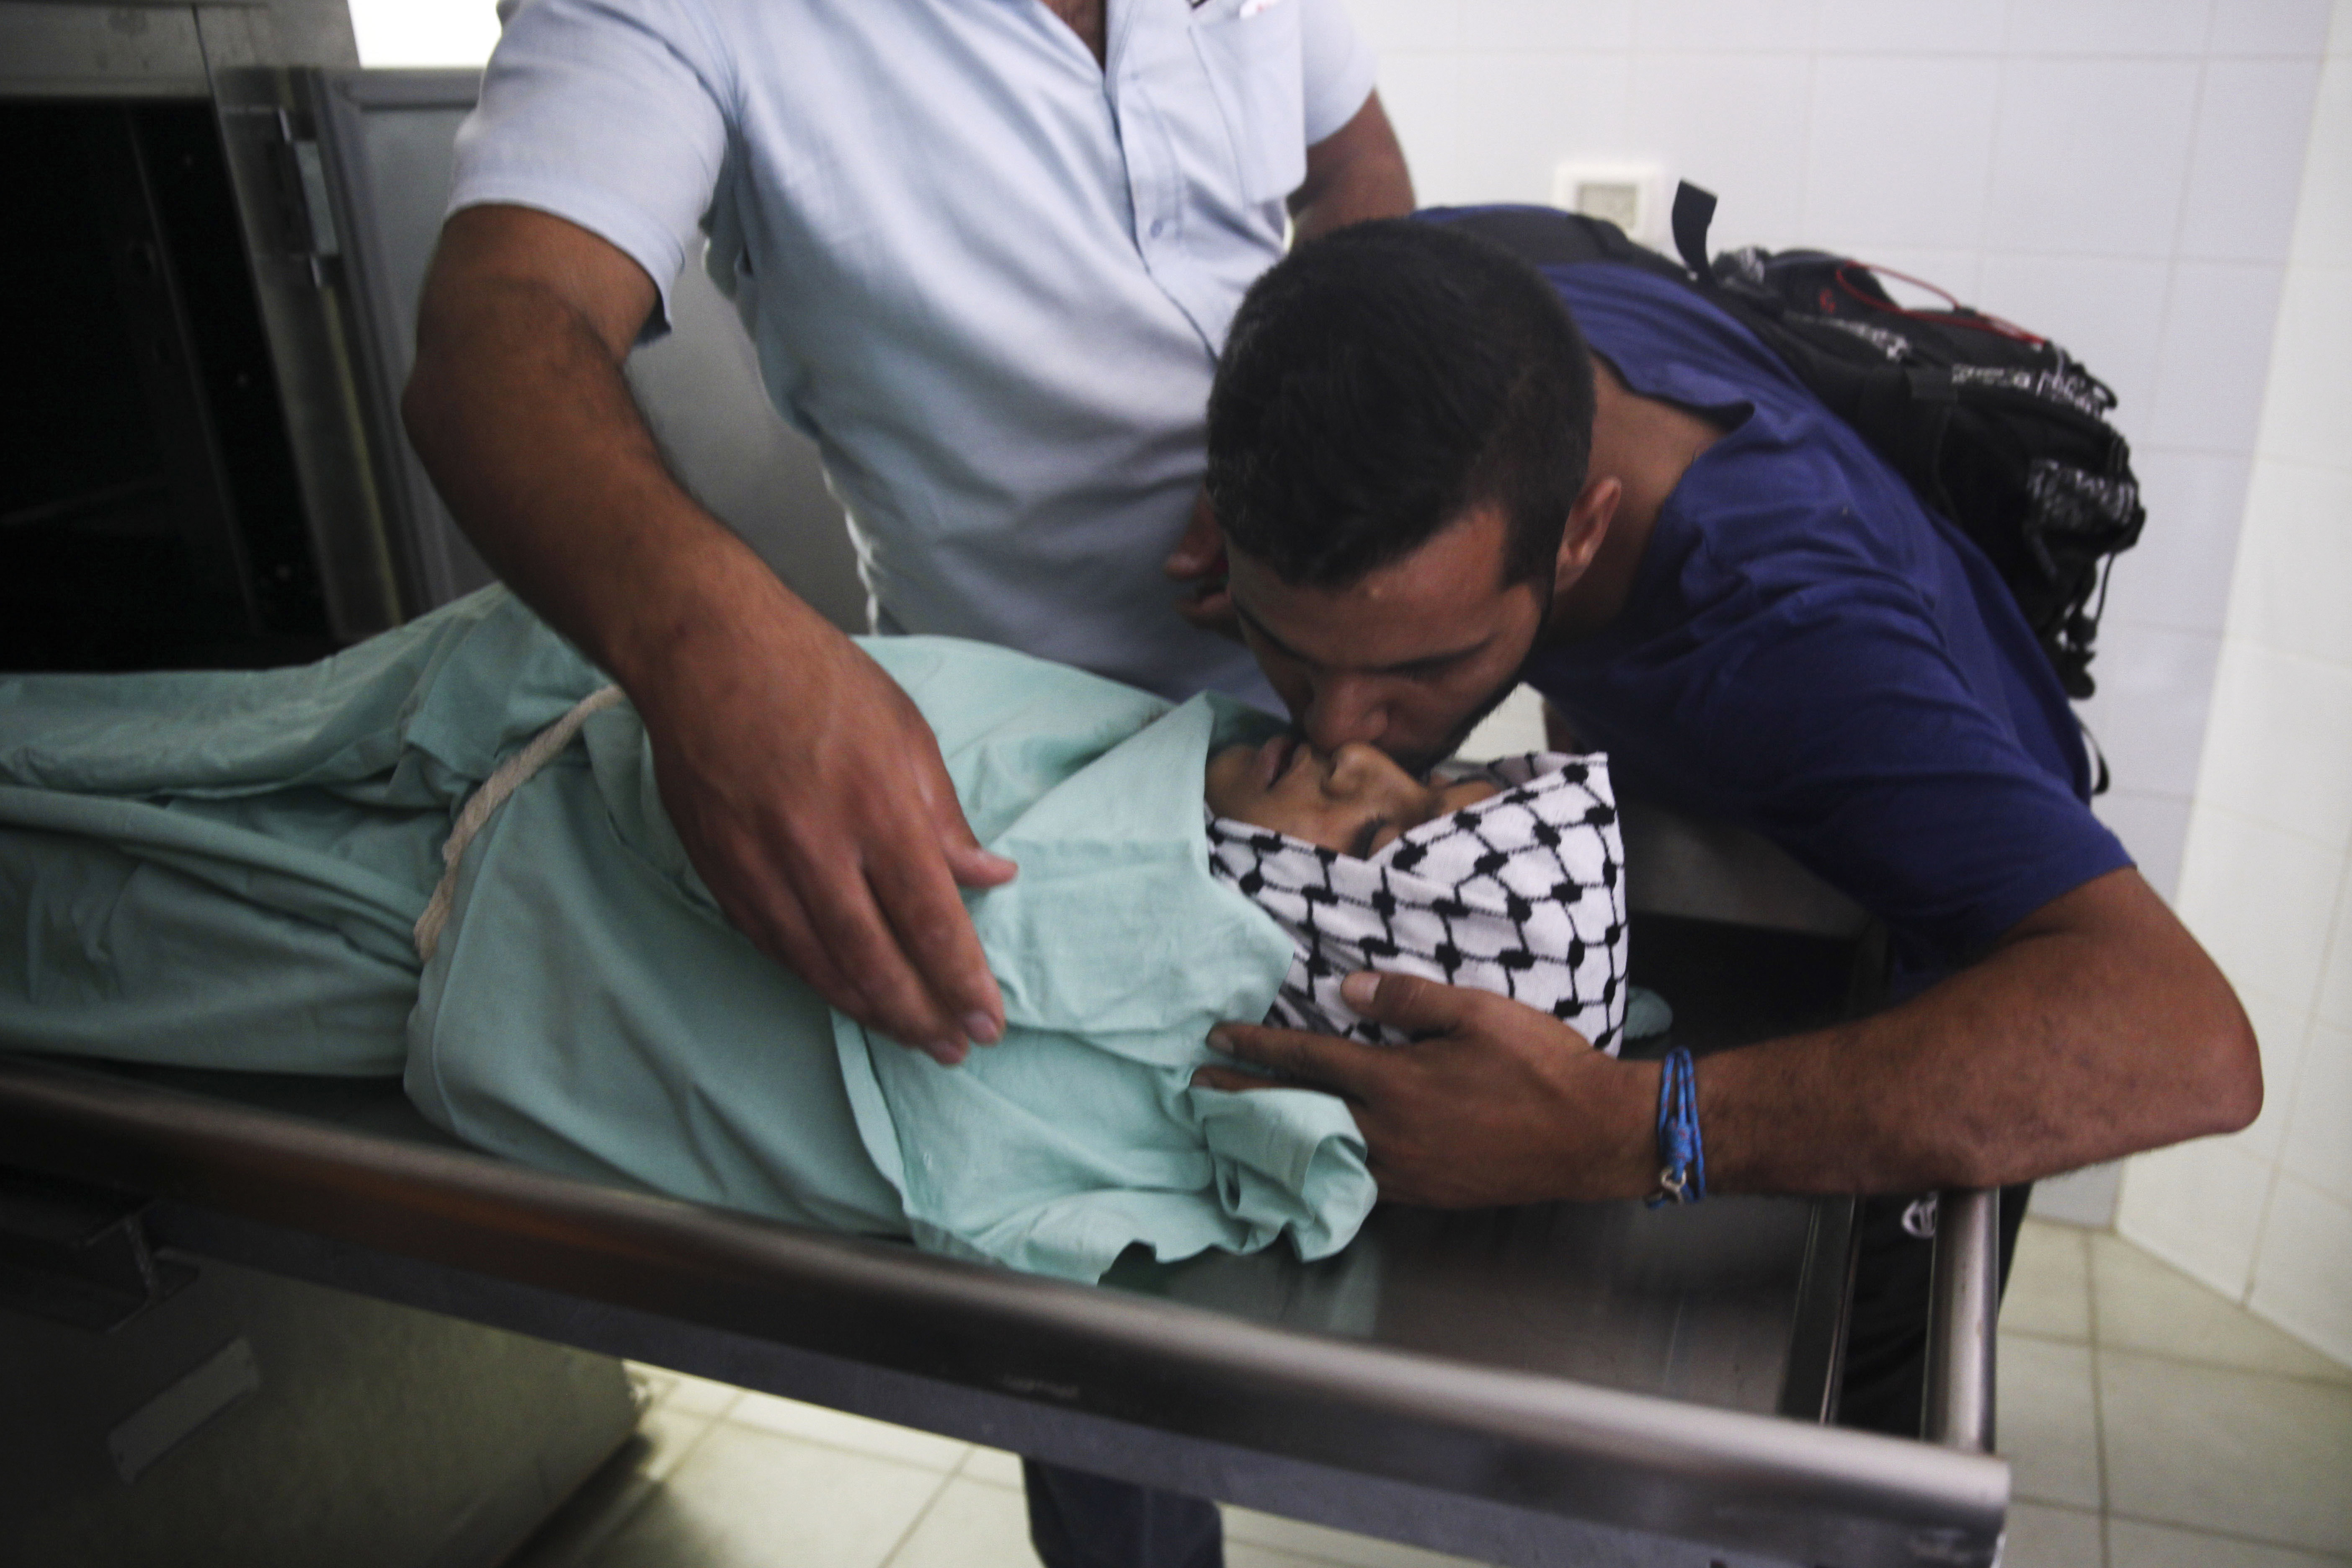 A man kisses 13-year-old Palestinian Abdel Rahman Shadi in a morgue in the town of Bethlehem, West Bank, Monday, Oct. 5, 2015. Shadi died after being hit by a live bullet to the chest during clashes between Palestinians and Israeli security forces, a doctor at a hospital near the clashes said. (AP Photo/Mahmoud Illean)